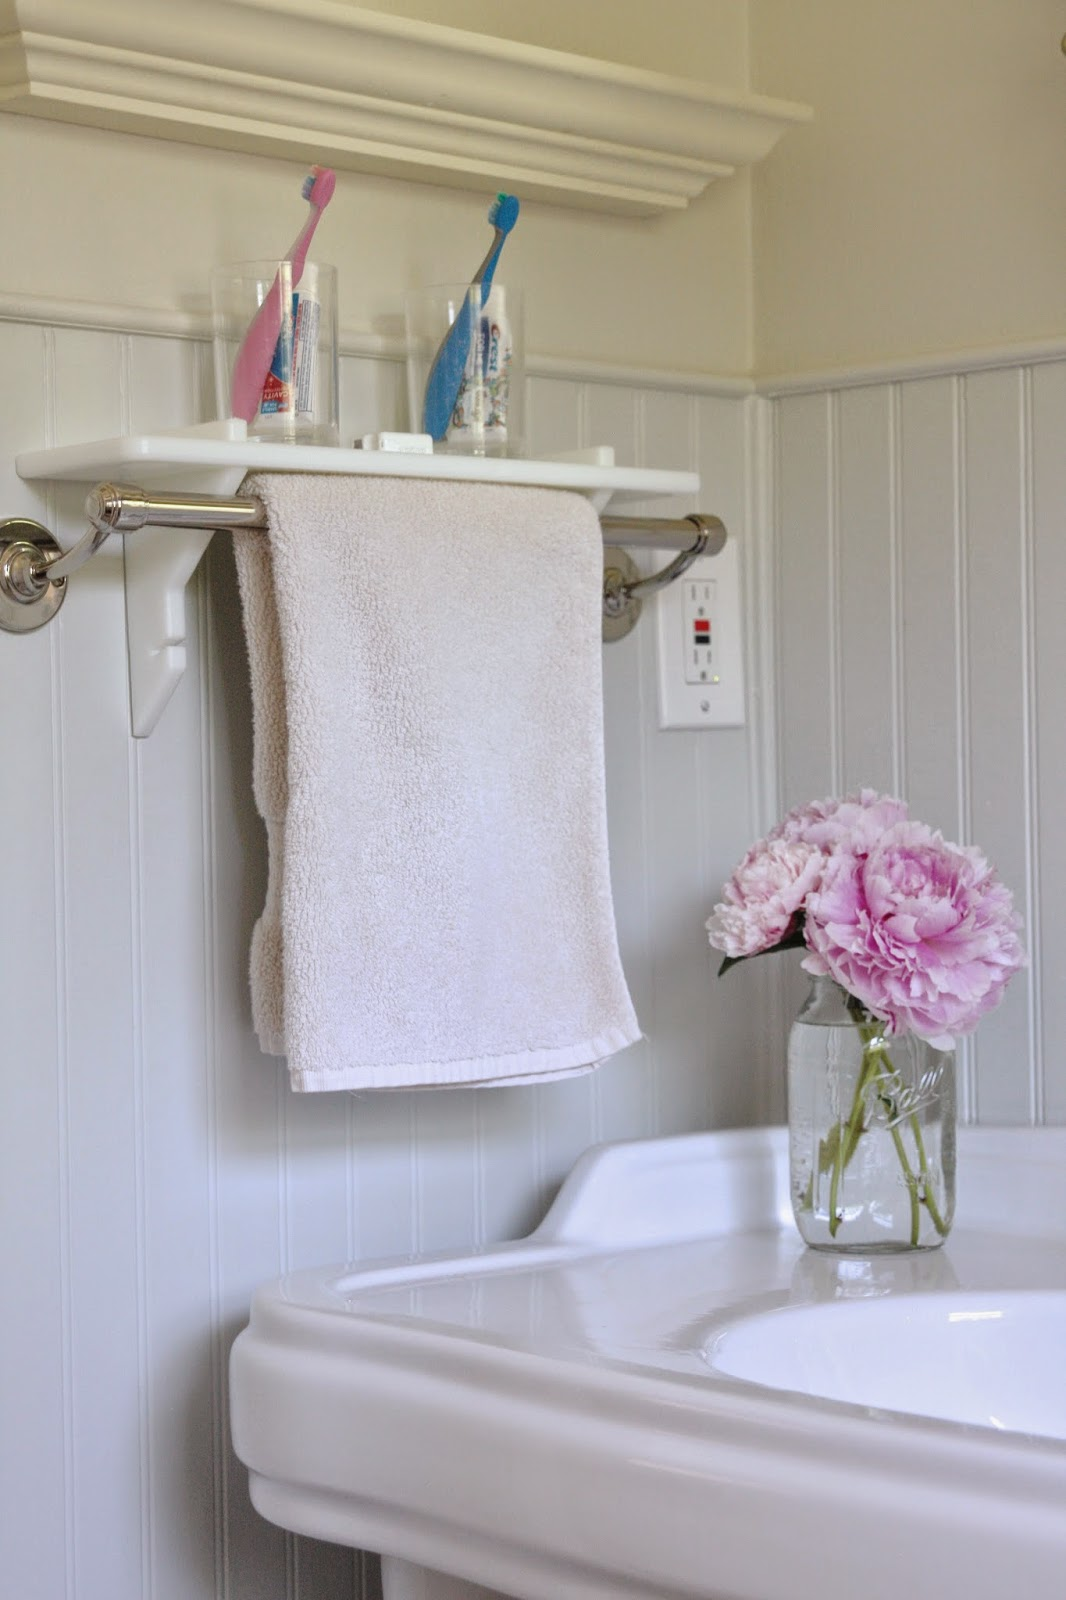 Trend If you have a towel bar in your shower Shower Shelf has a few added features besides being an amazing extra shelf There are openings on the top ends for